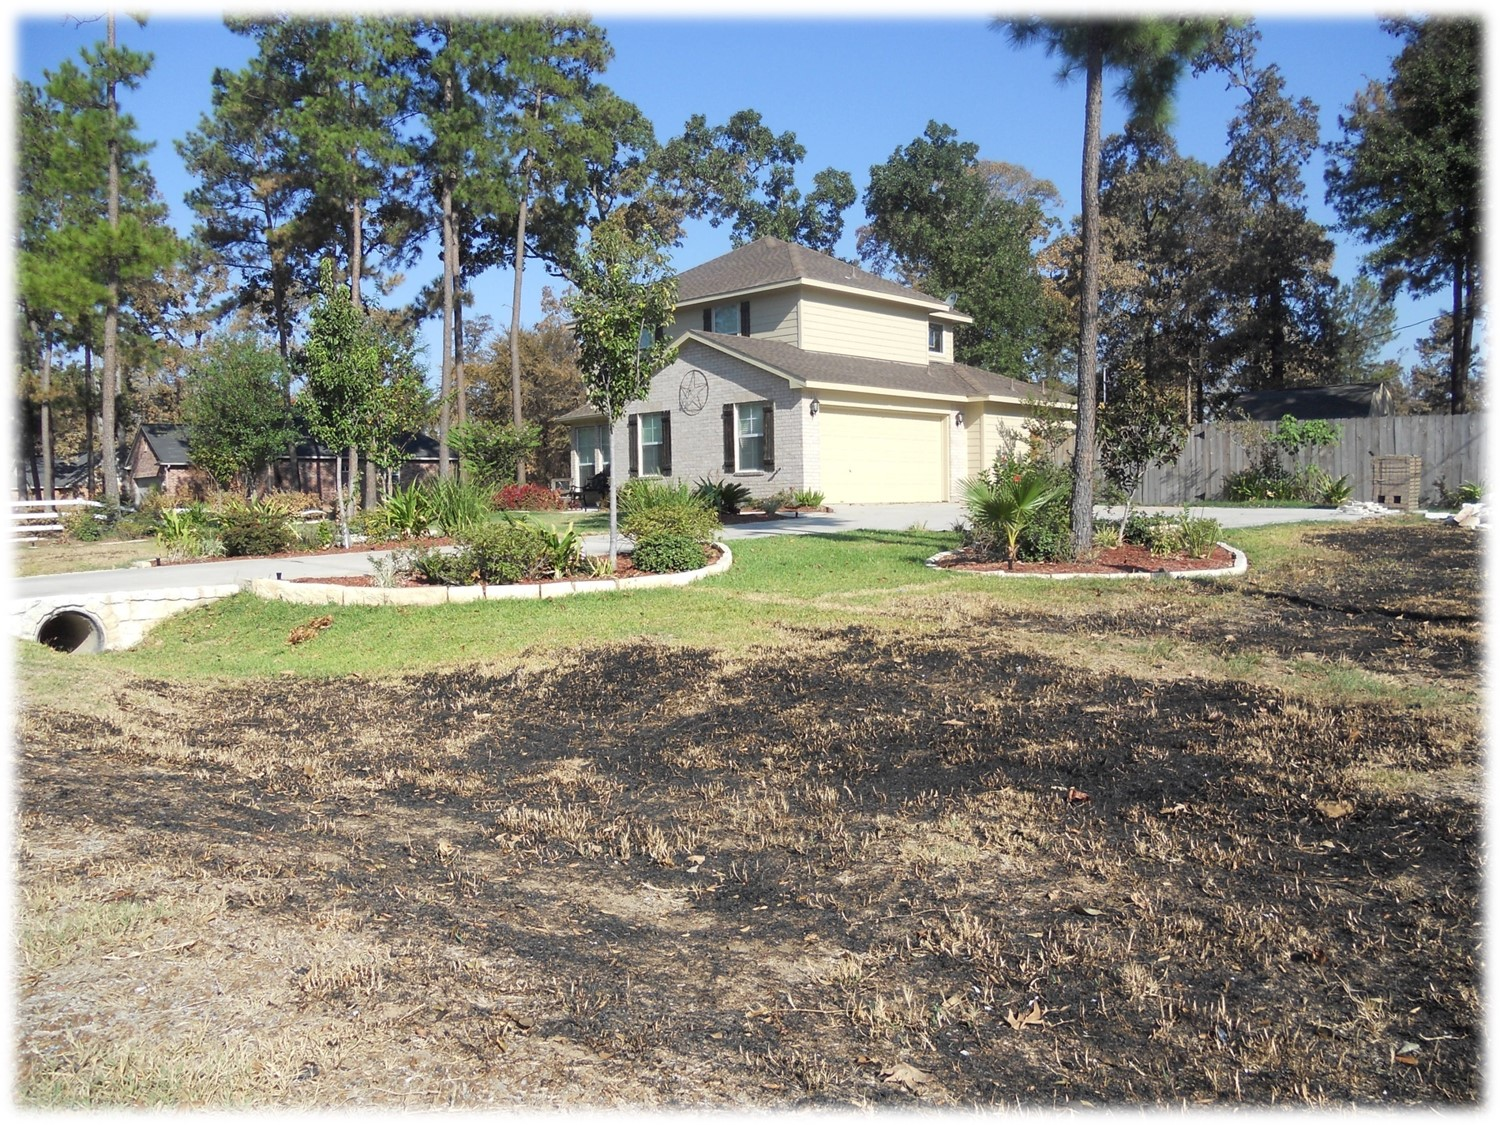 BURNT GRASS LEADING UP TO NON-COMBUSTIBLE LANDSCAPING